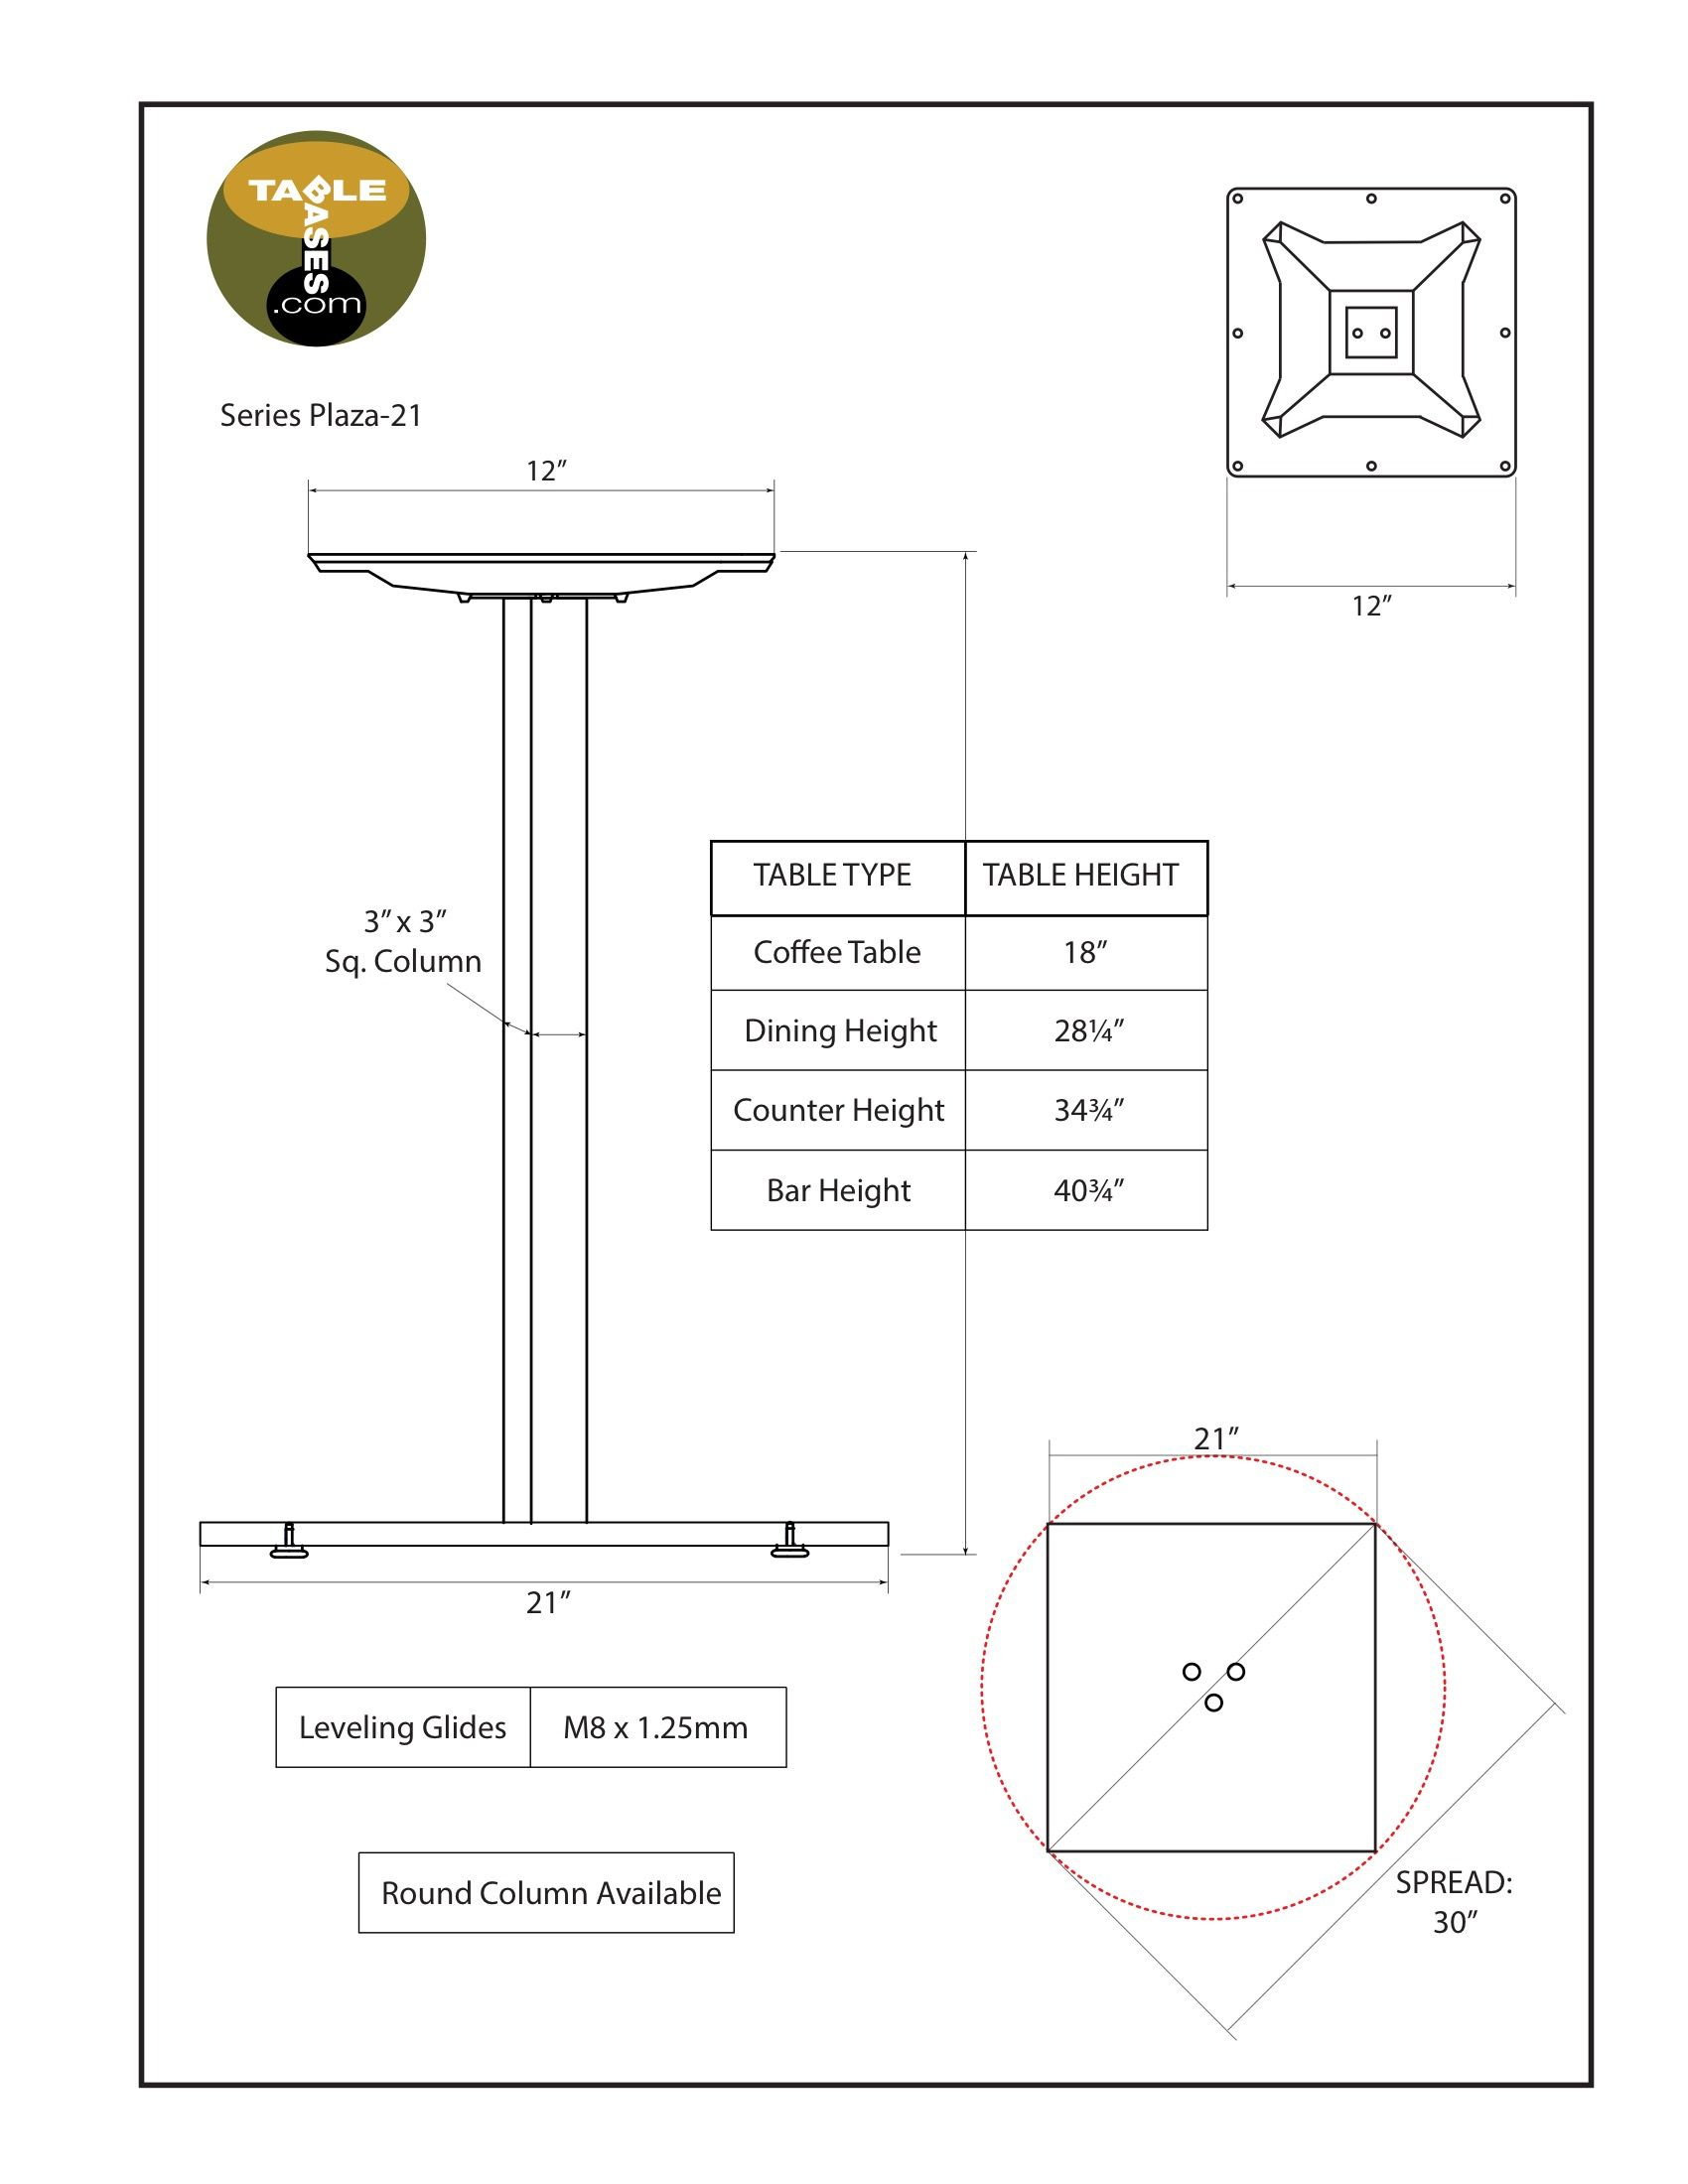 Plaza-21 Specifications